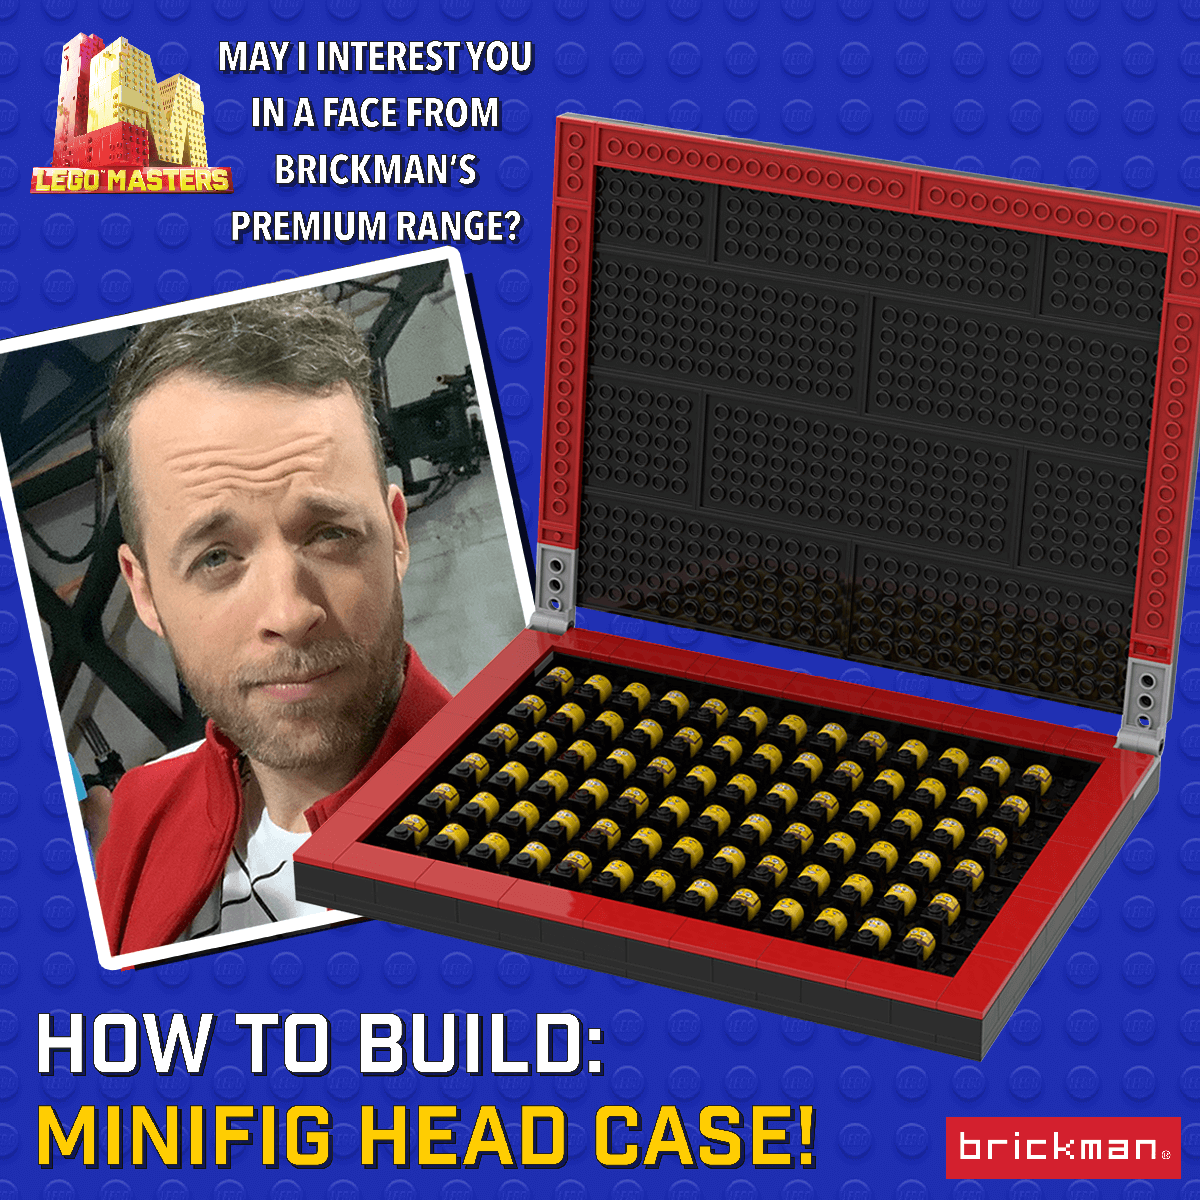 How to Build a Minifig Head case